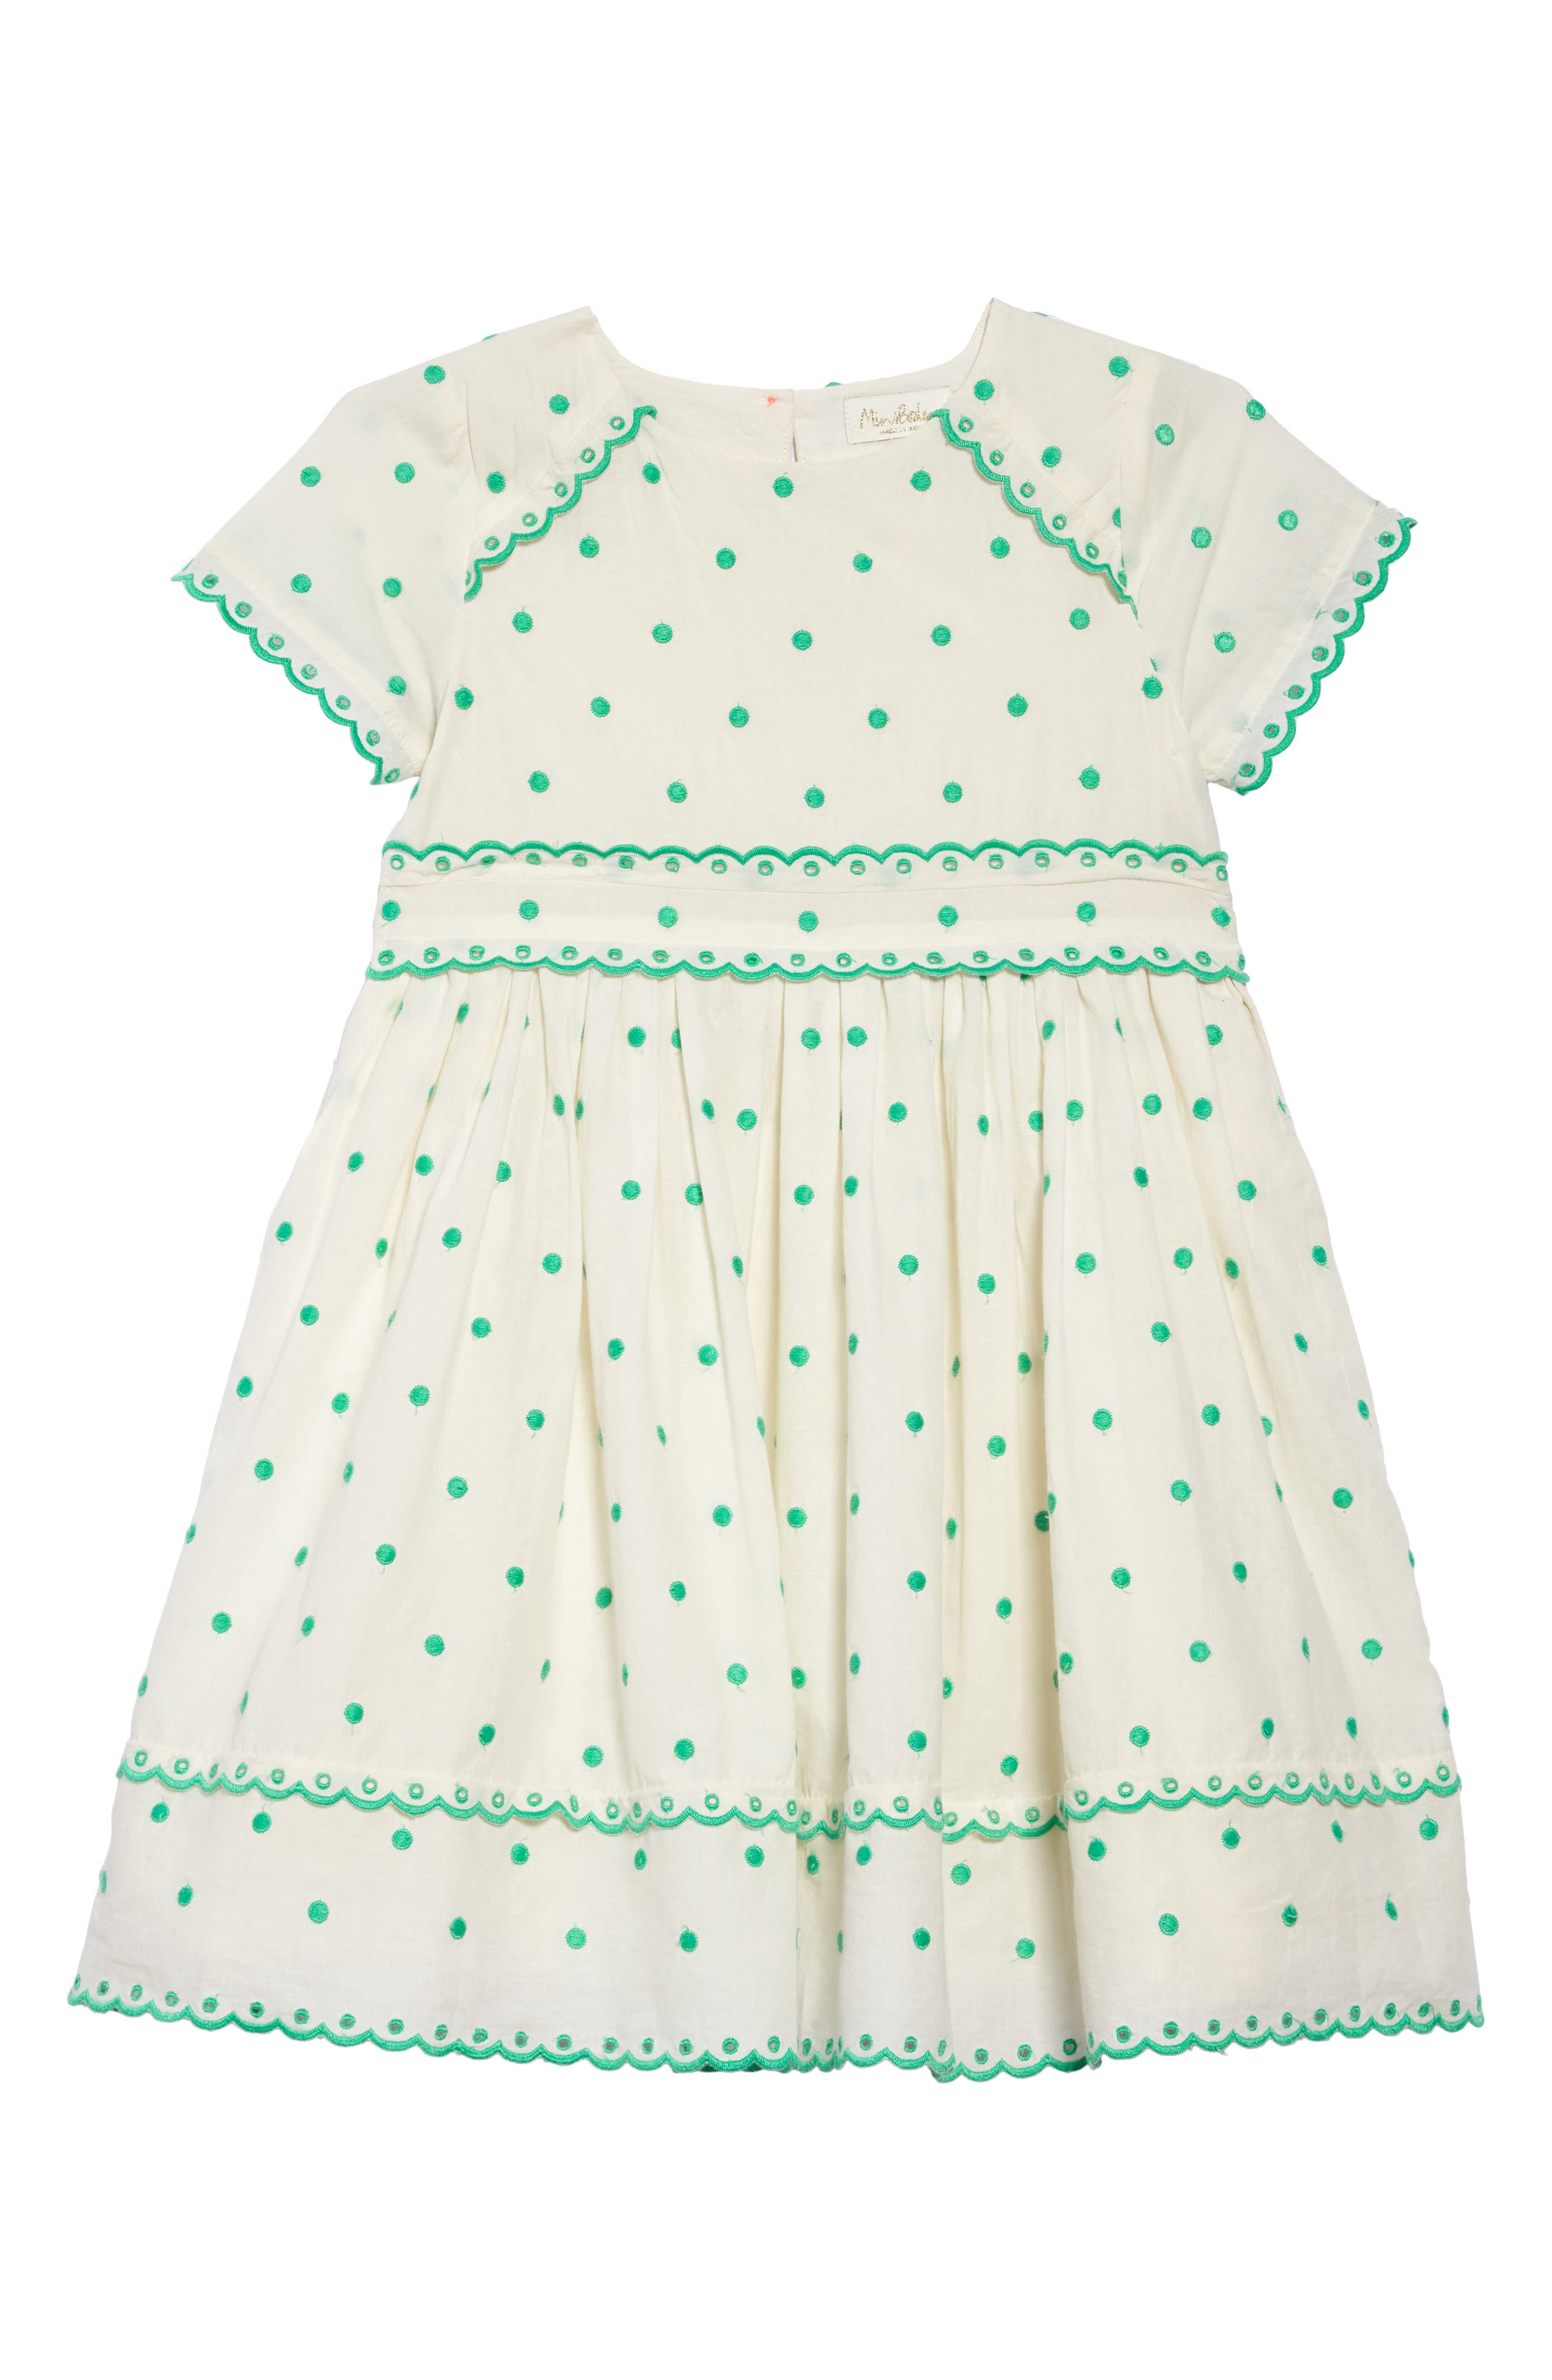 Embroidered Dot Scalloped Dress,                             Main thumbnail 1, color,                             Sptecru/ Mint Embroidered Spot